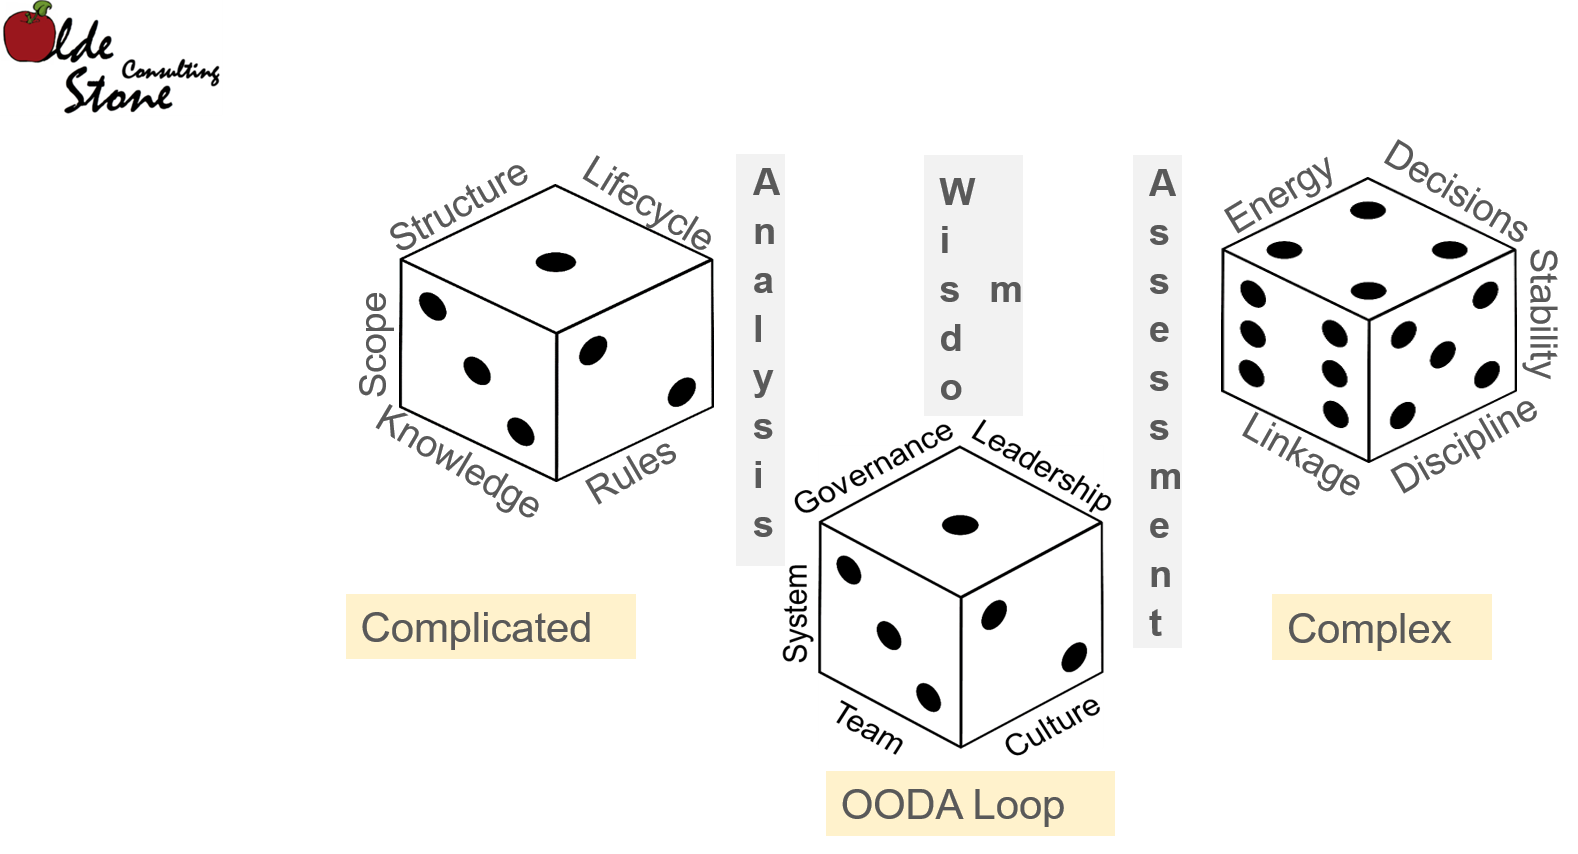 A2W dimensions for evaluating a system